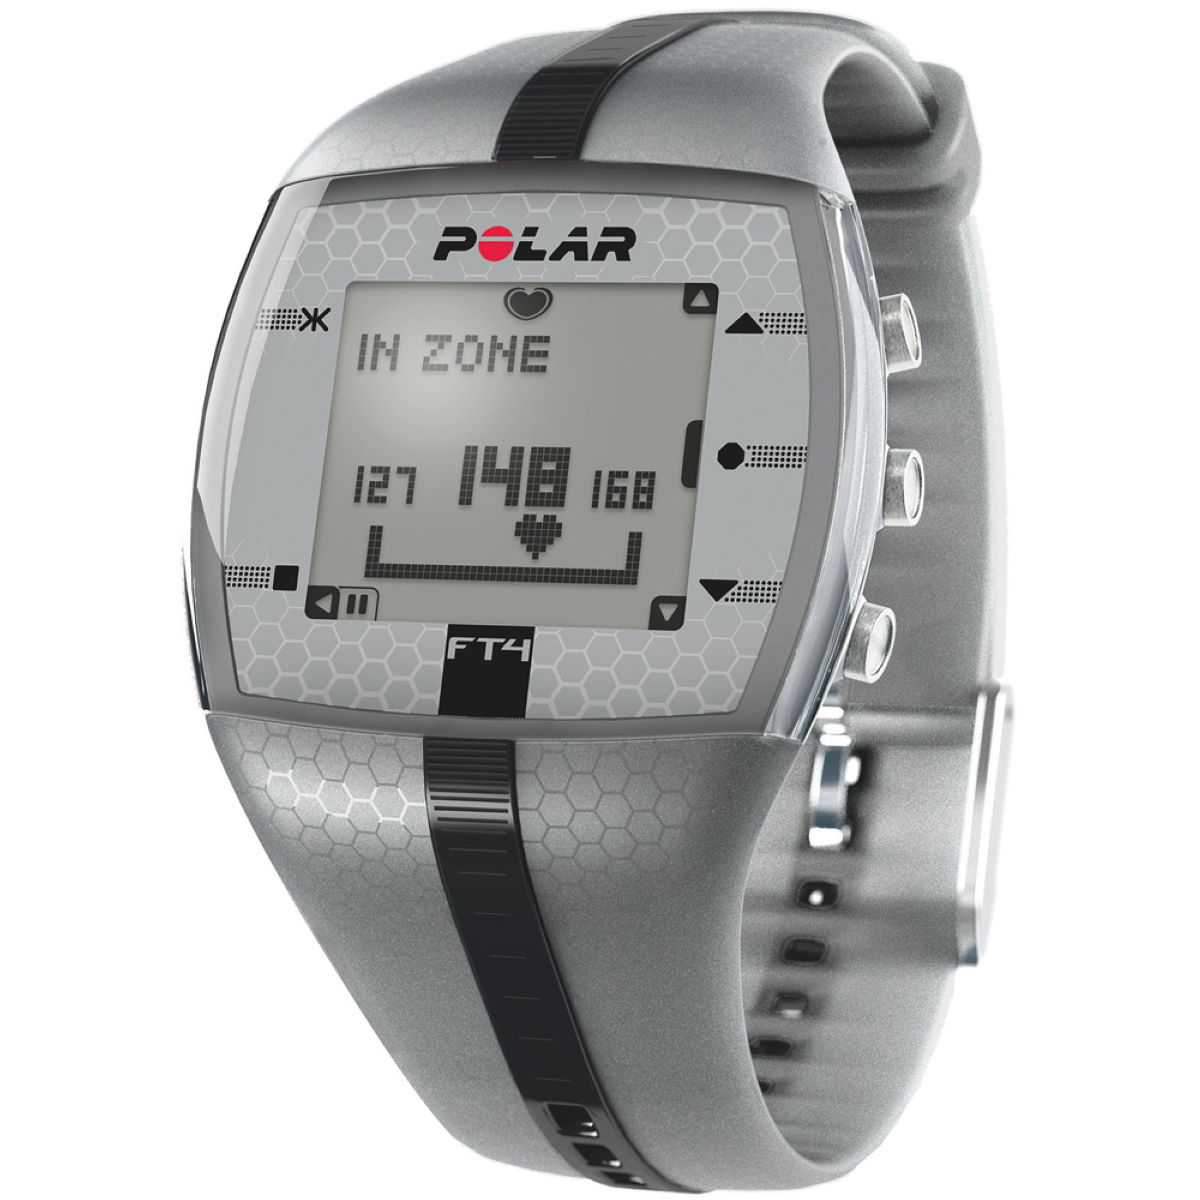 Polar FT4 Heart Rate Monitor Training Computer